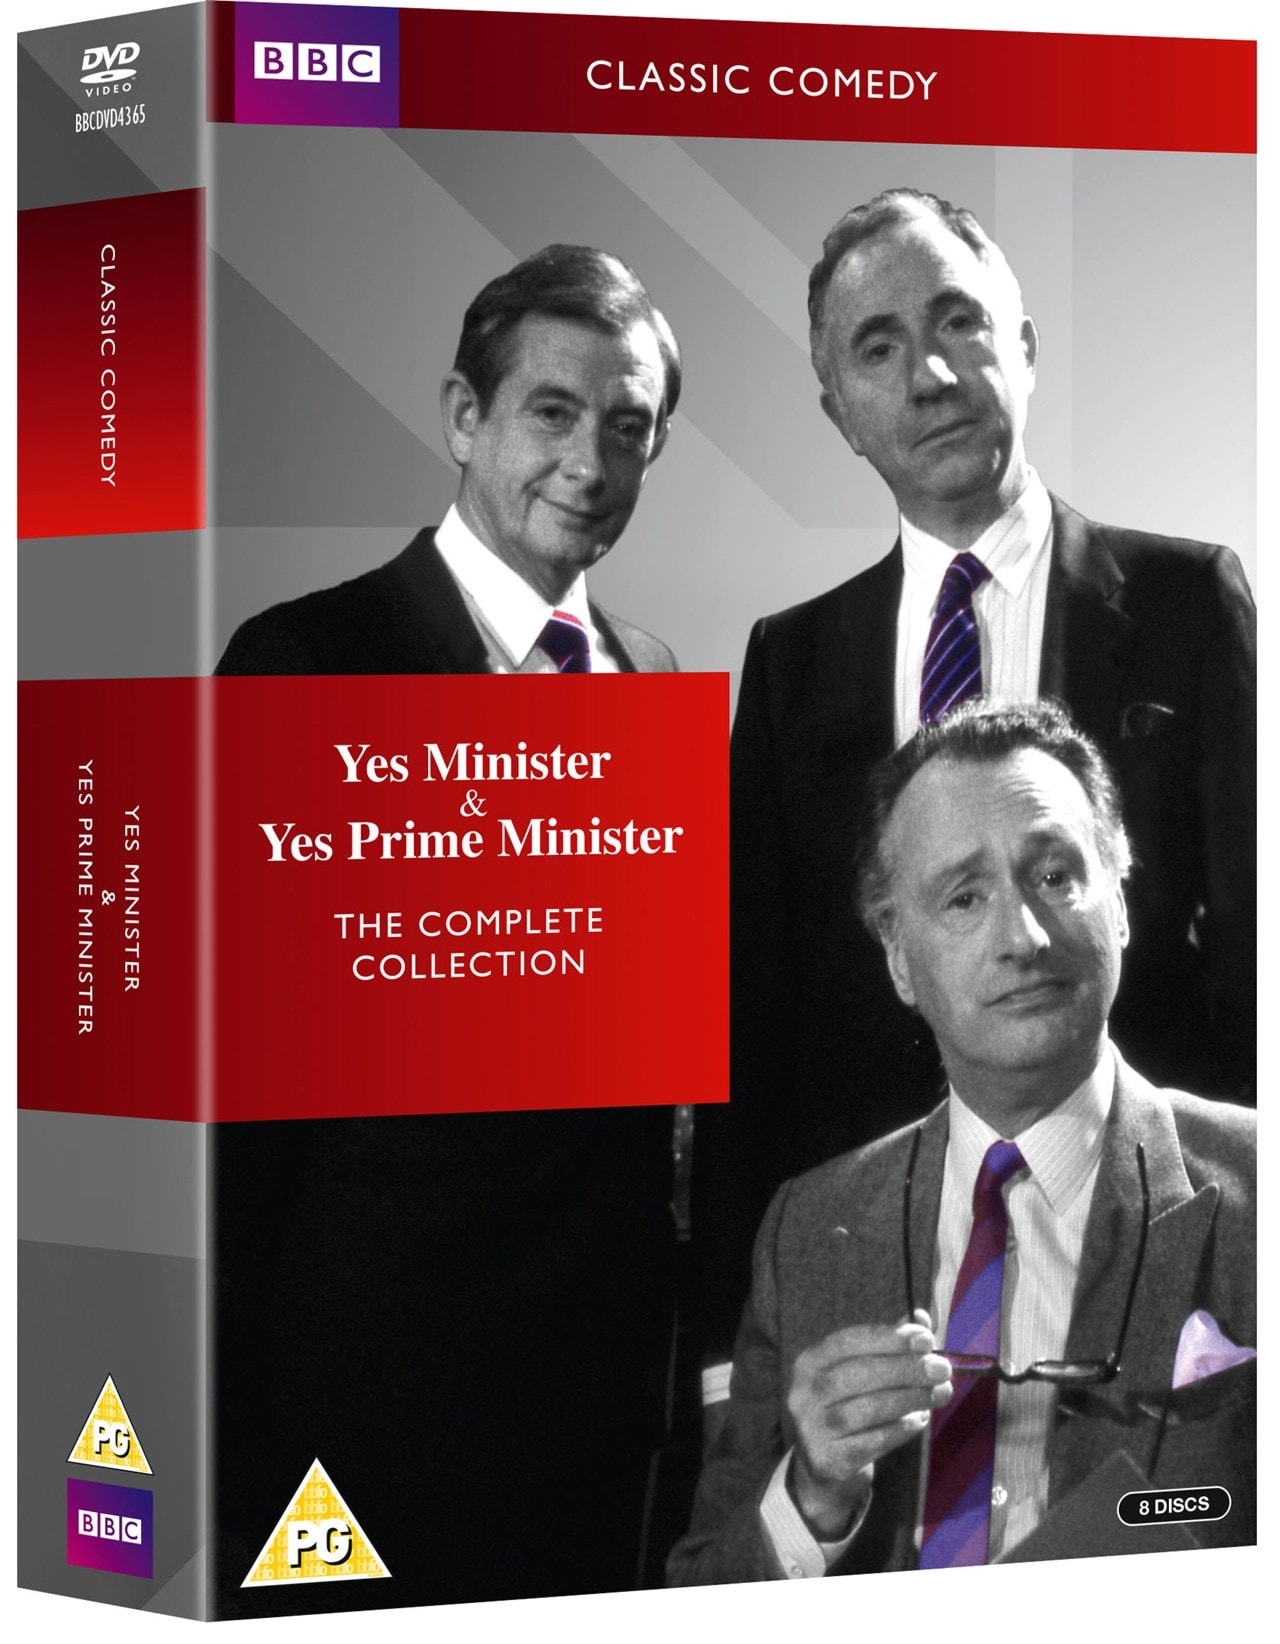 Yes Minister & Yes Prime Minister: The Complete Collection... - 2